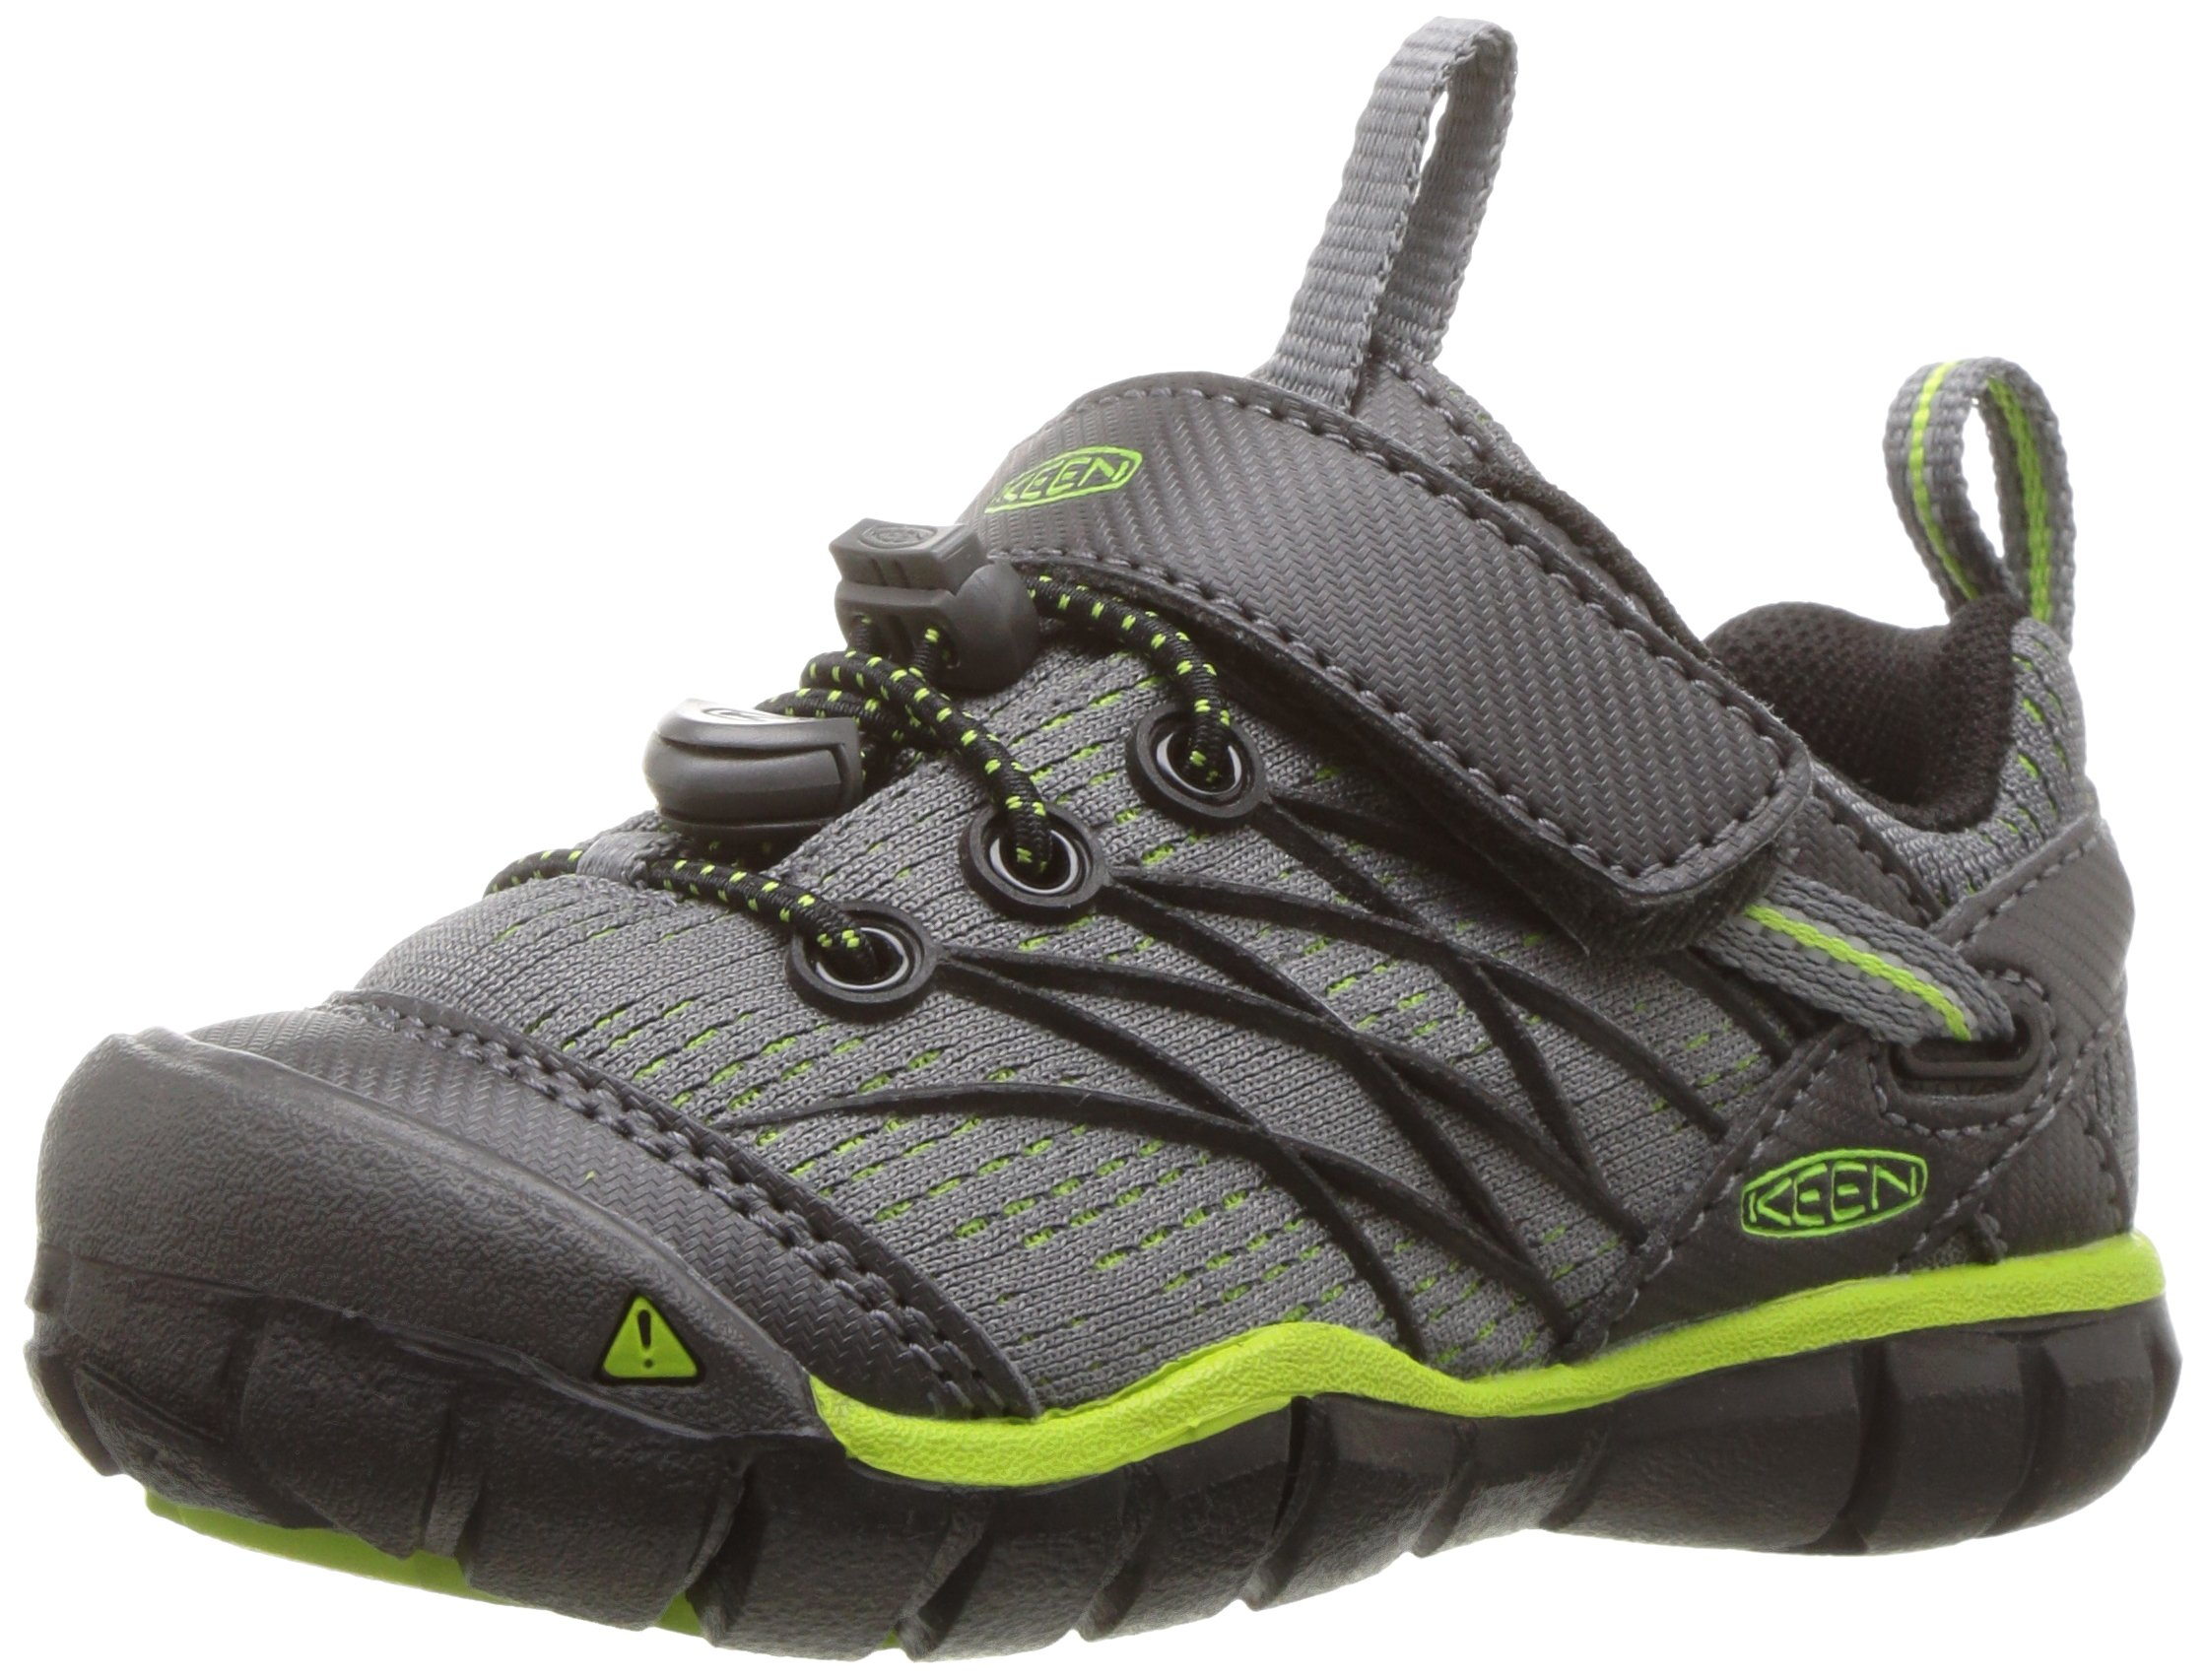 KEEN Chandler CNX Hiking Shoe, Magnet/Greenery, 5 M US by KEEN